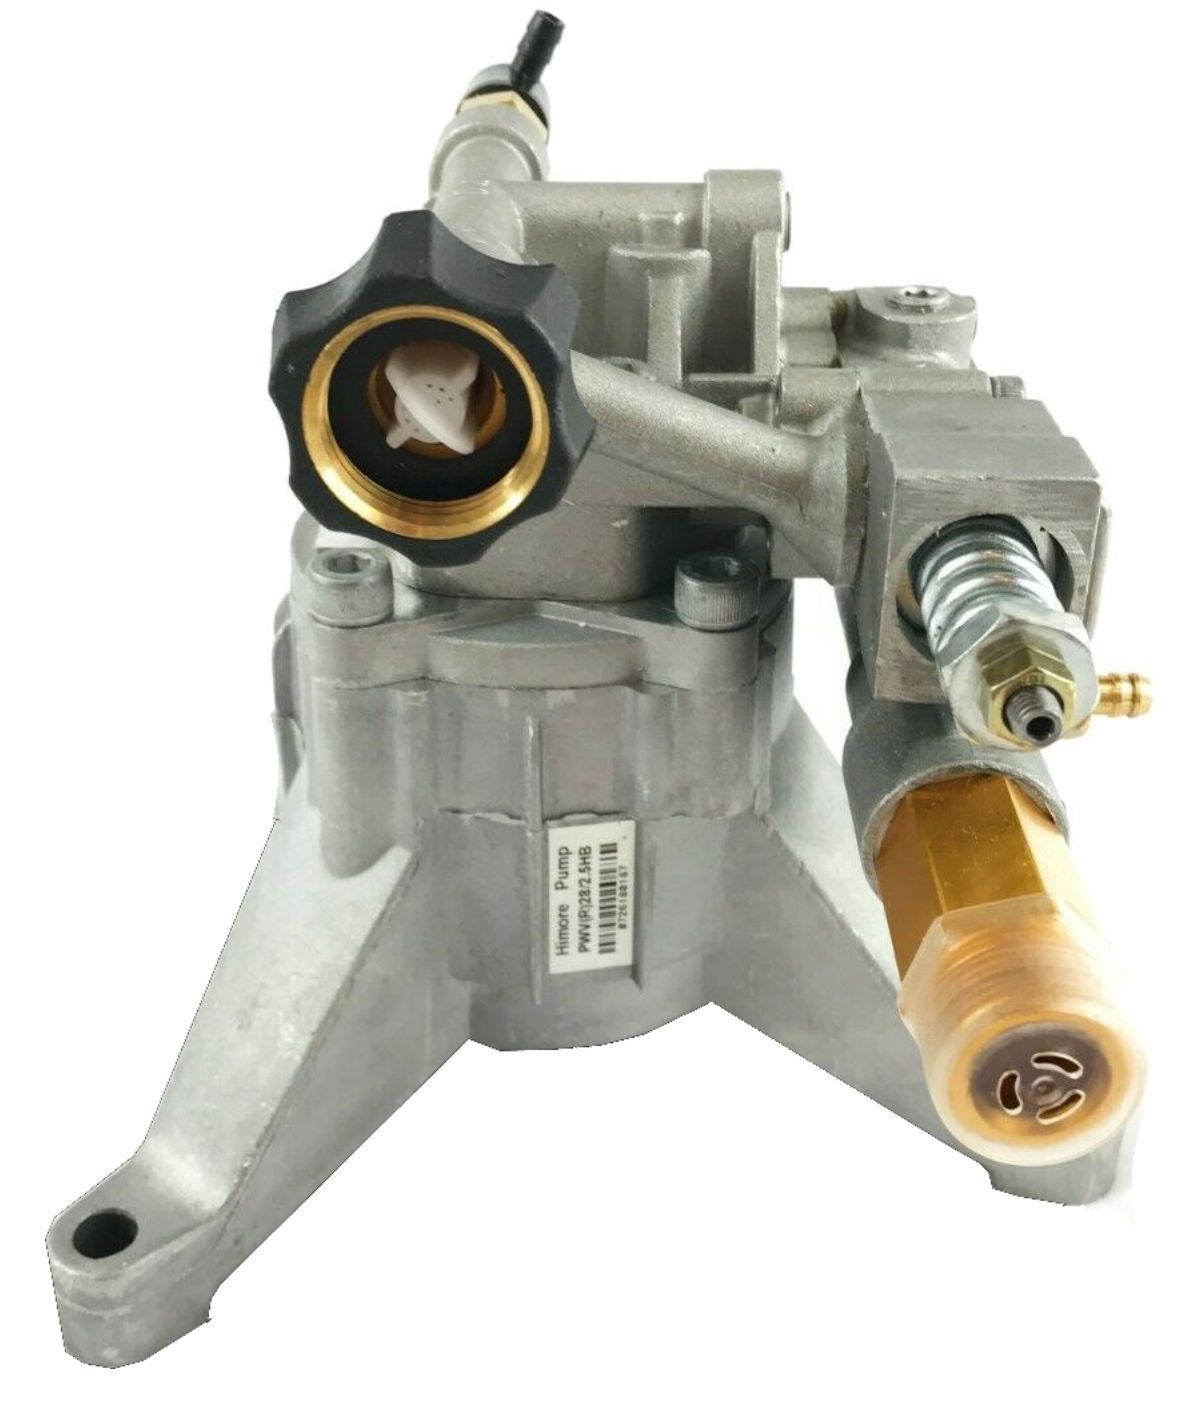 2700 PSI PRESSURE WASHER WATER PUMP Campbell Hausfeld PW165015LE - AE-Power